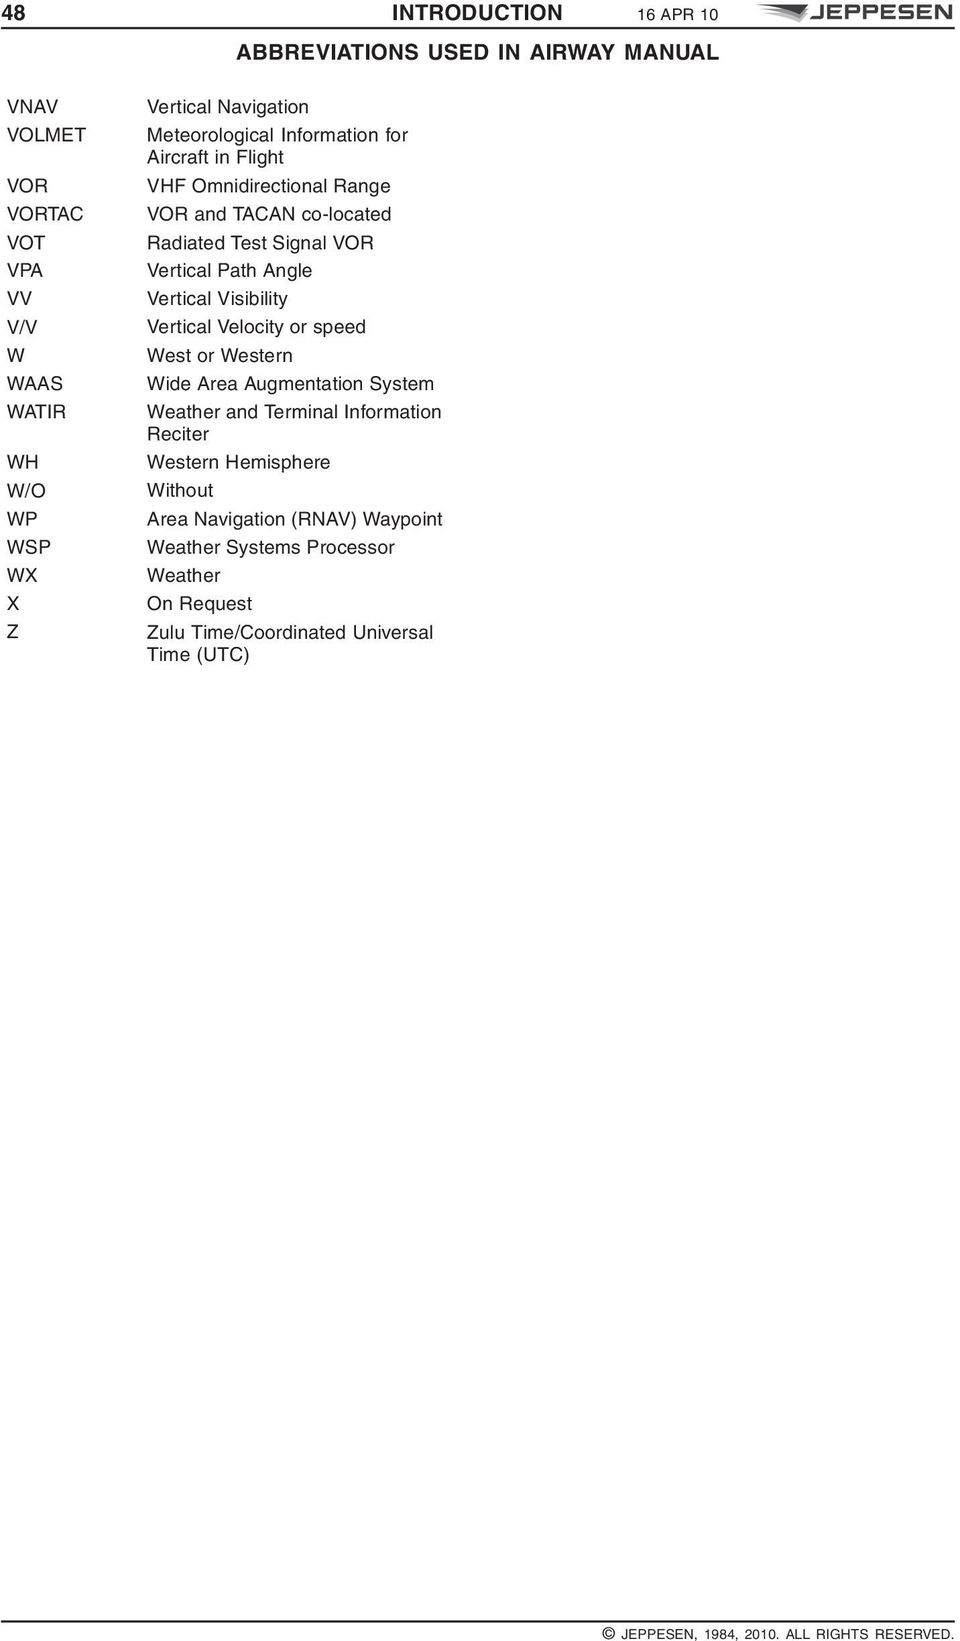 Jeppesen airway manual 2013 india jeppesen jdm mobile array definitions abbreviations used in airway manual pdf rh docplayer net fandeluxe Images